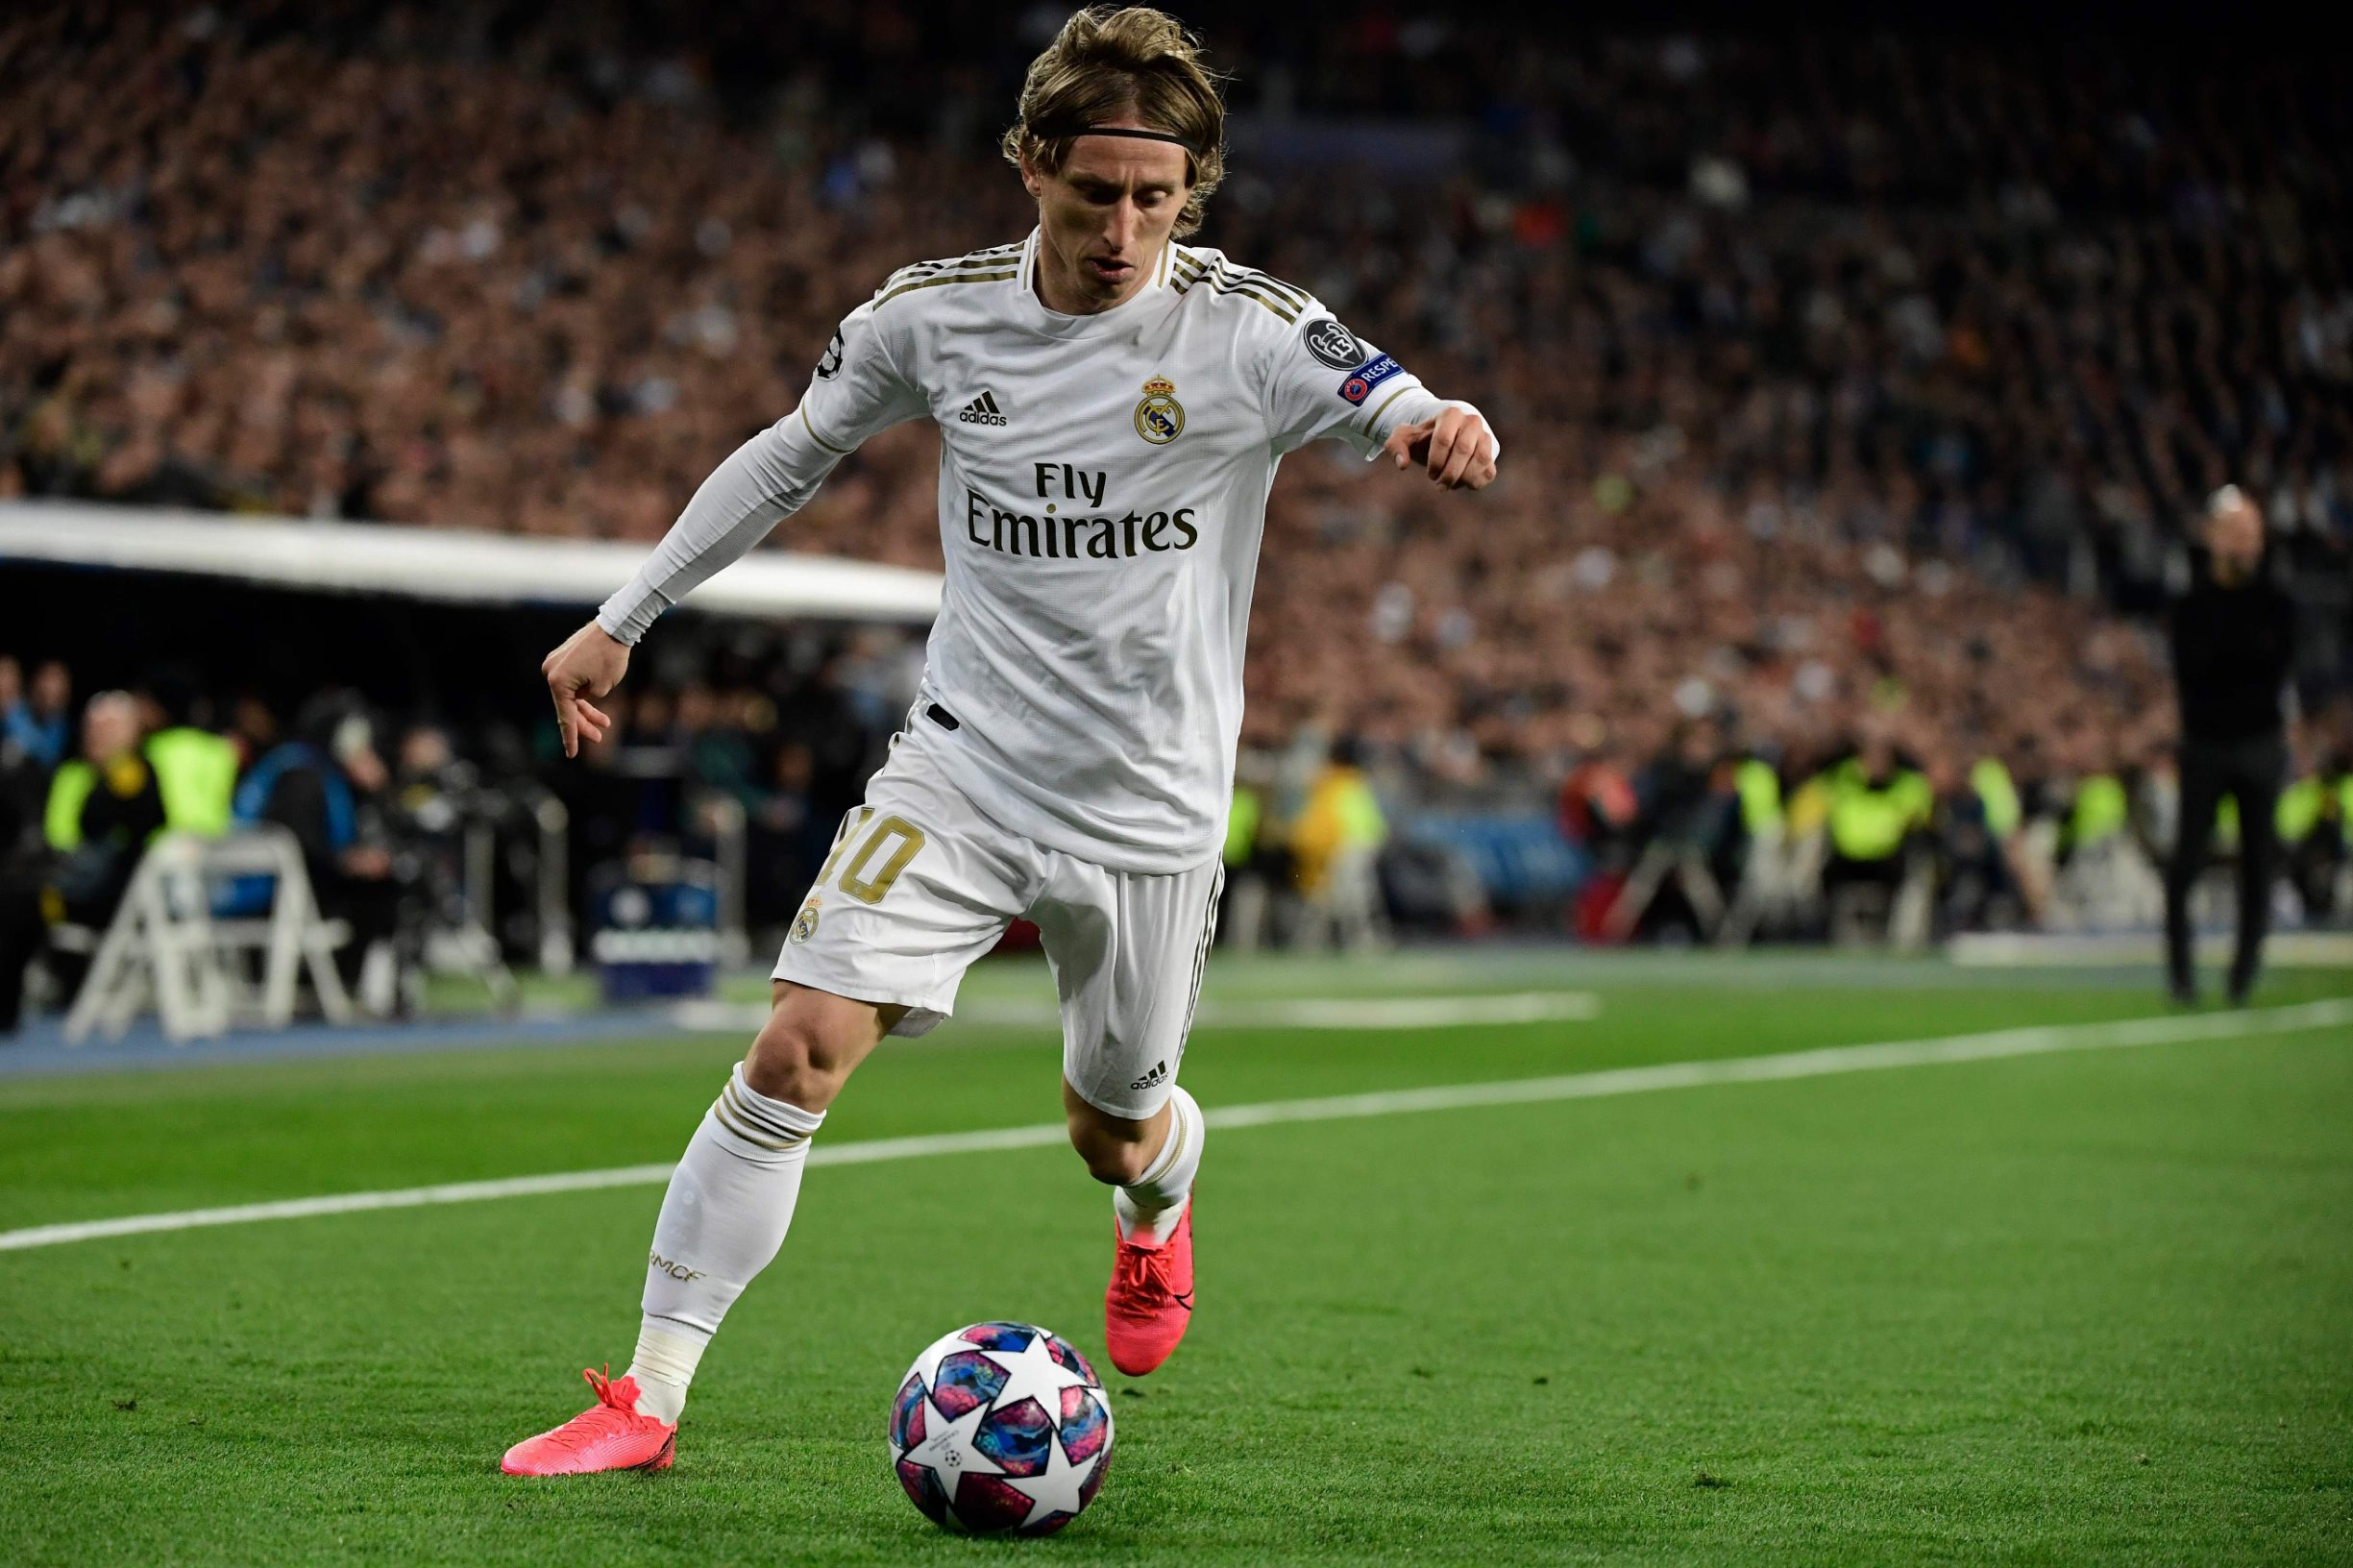 Real Madrid's Croatian midfielder Luka Modric controls the ball during the UEFA Champions League round of 16 first-leg football match between Real Madrid CF and Manchester City at the Santiago Bernabeu stadium in Madrid on February 26, 2020. (Photo by JAVIER SORIANO / AFP)